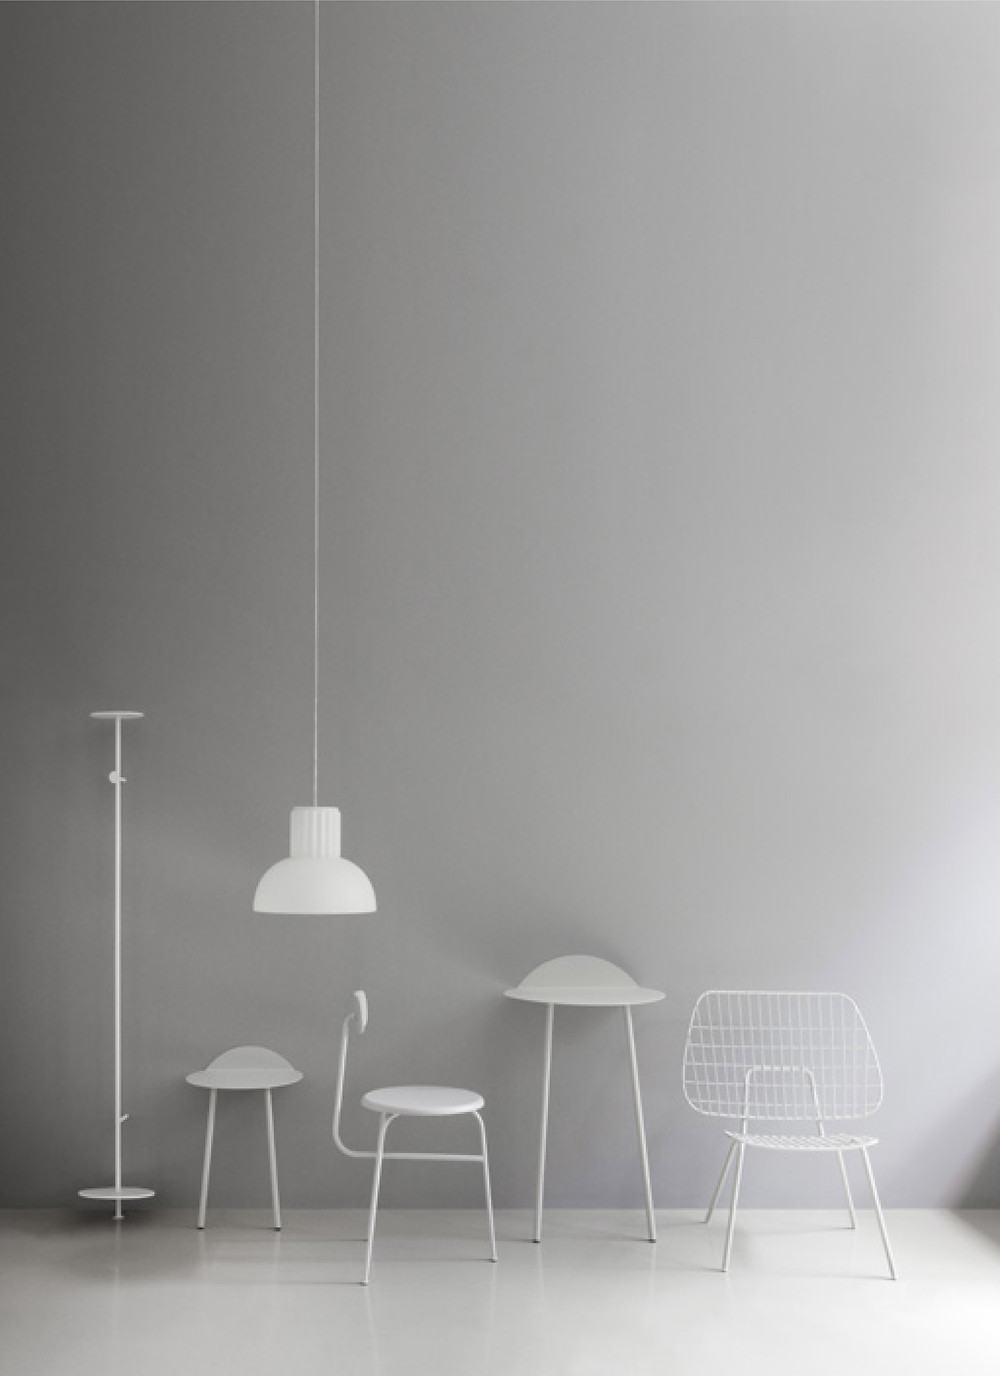 chairs, tables and lamp_Menu 2014